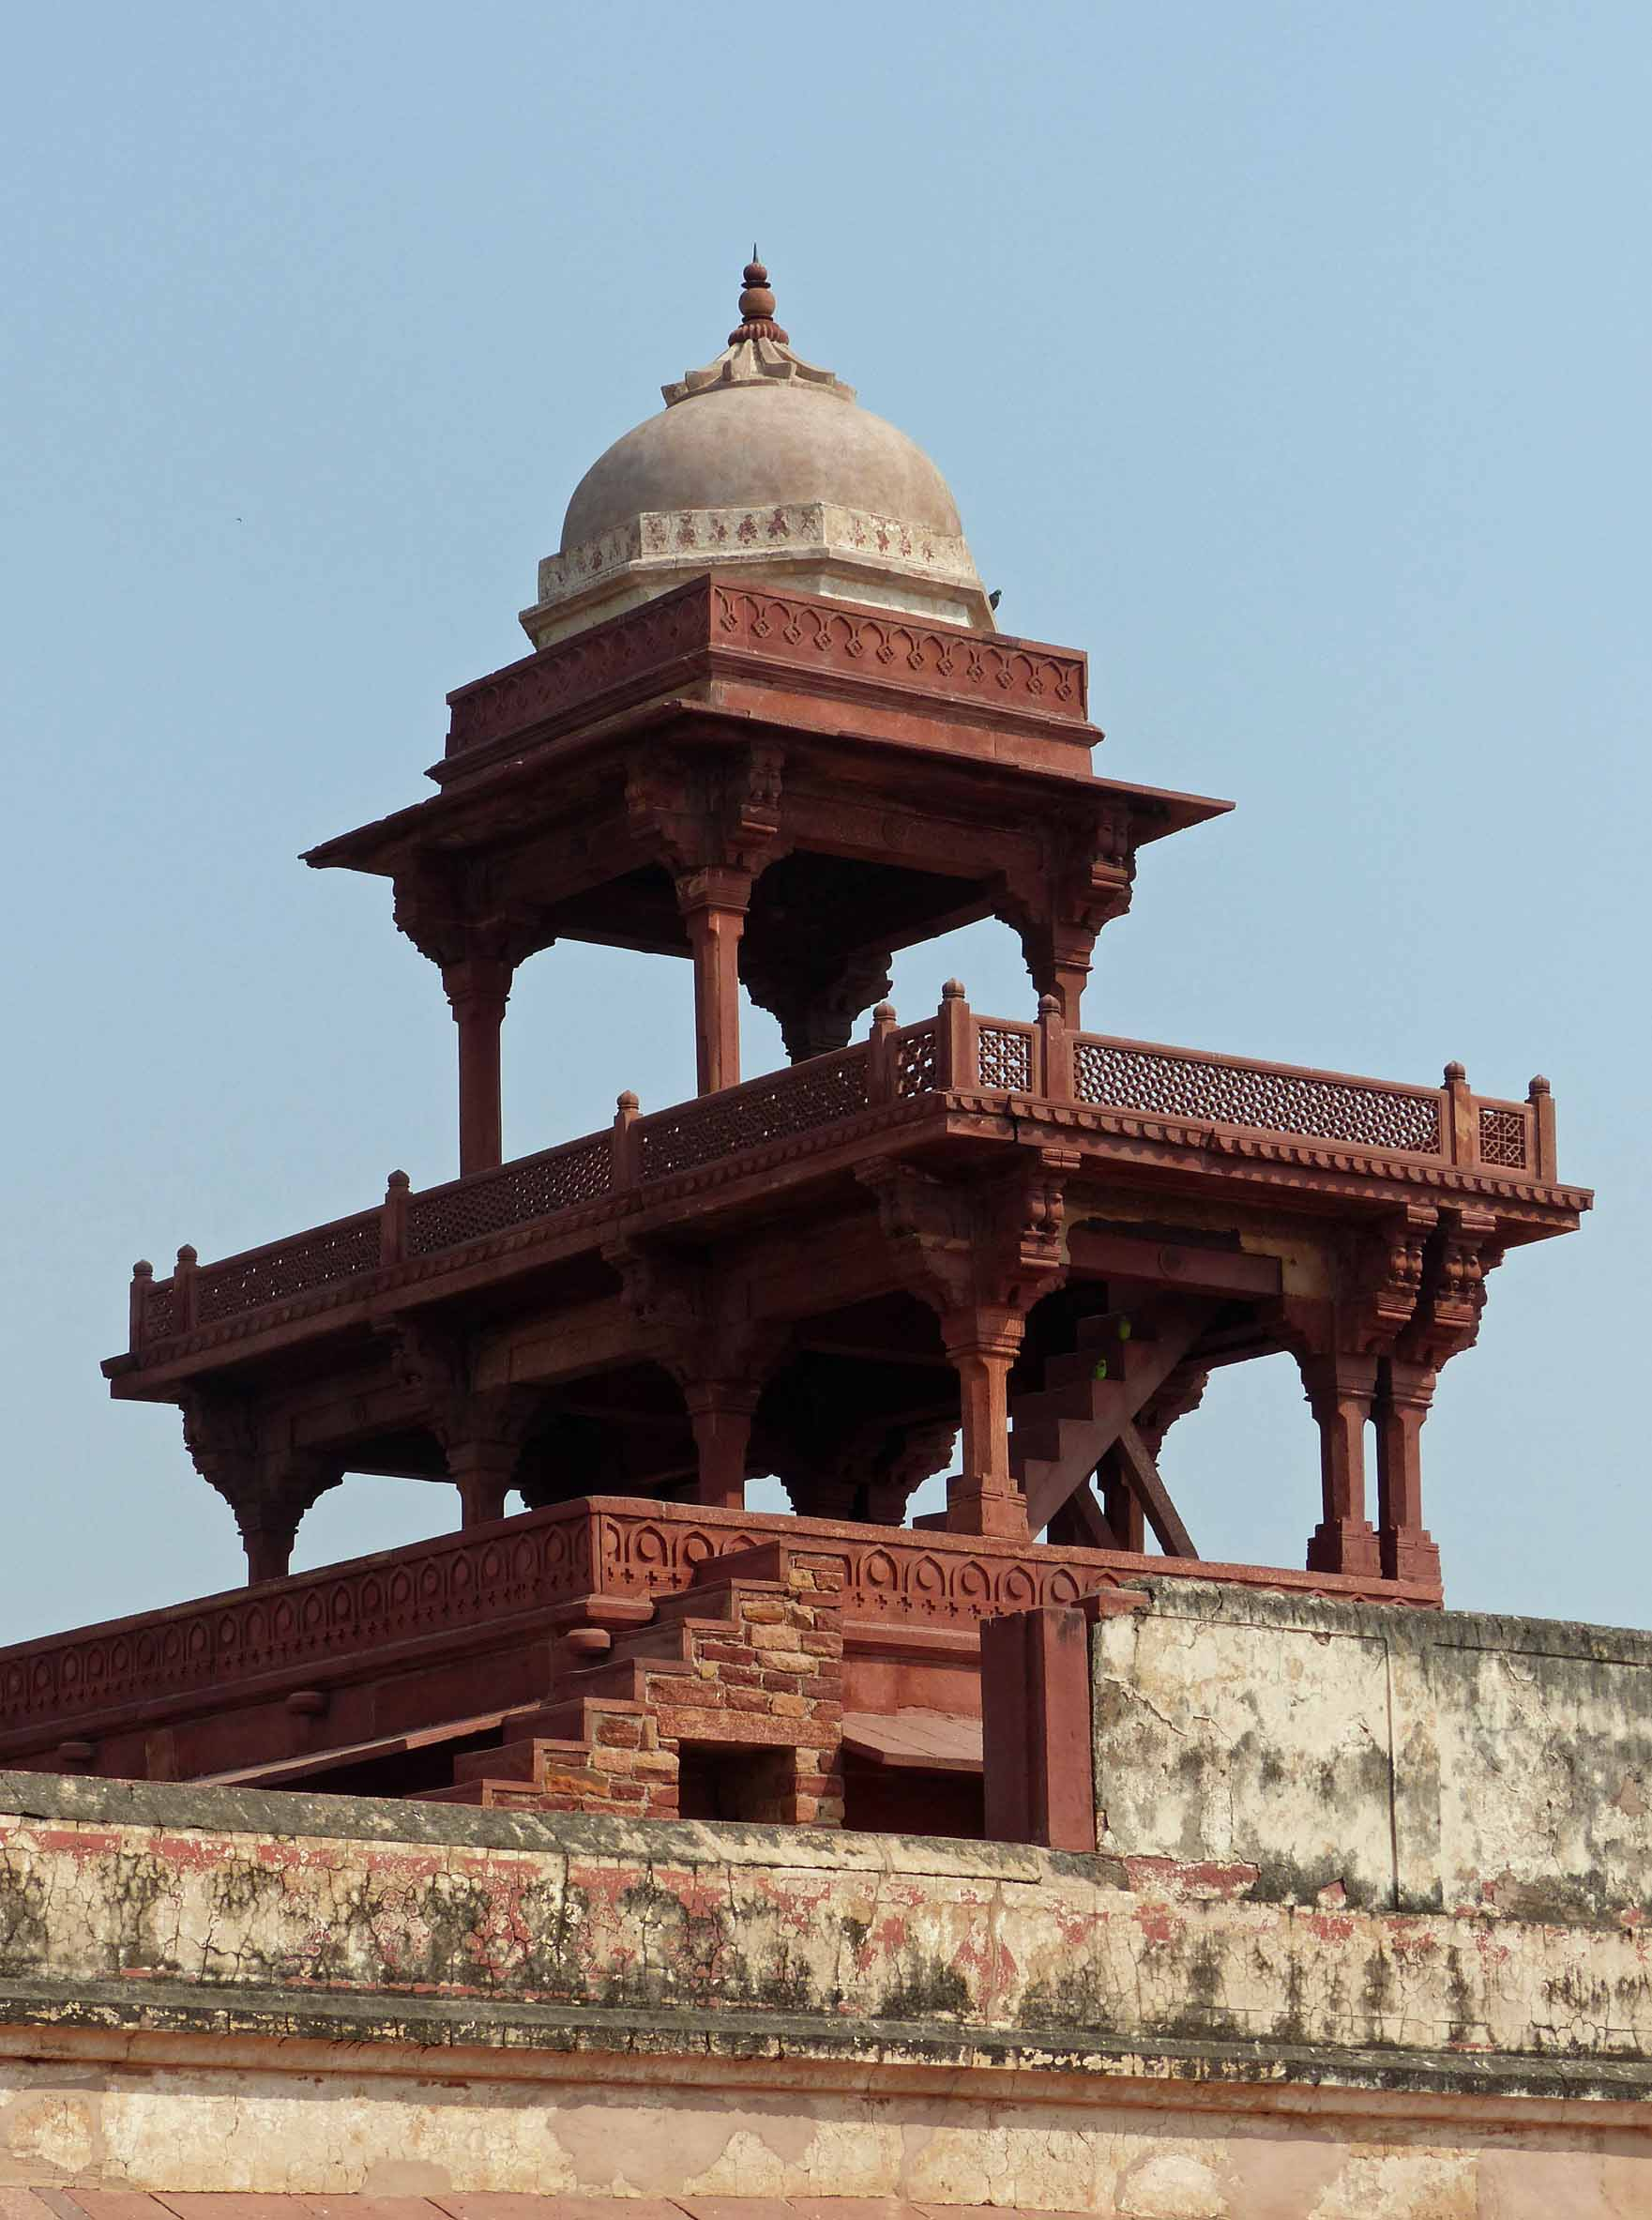 Ornate red sandstone roof and tower